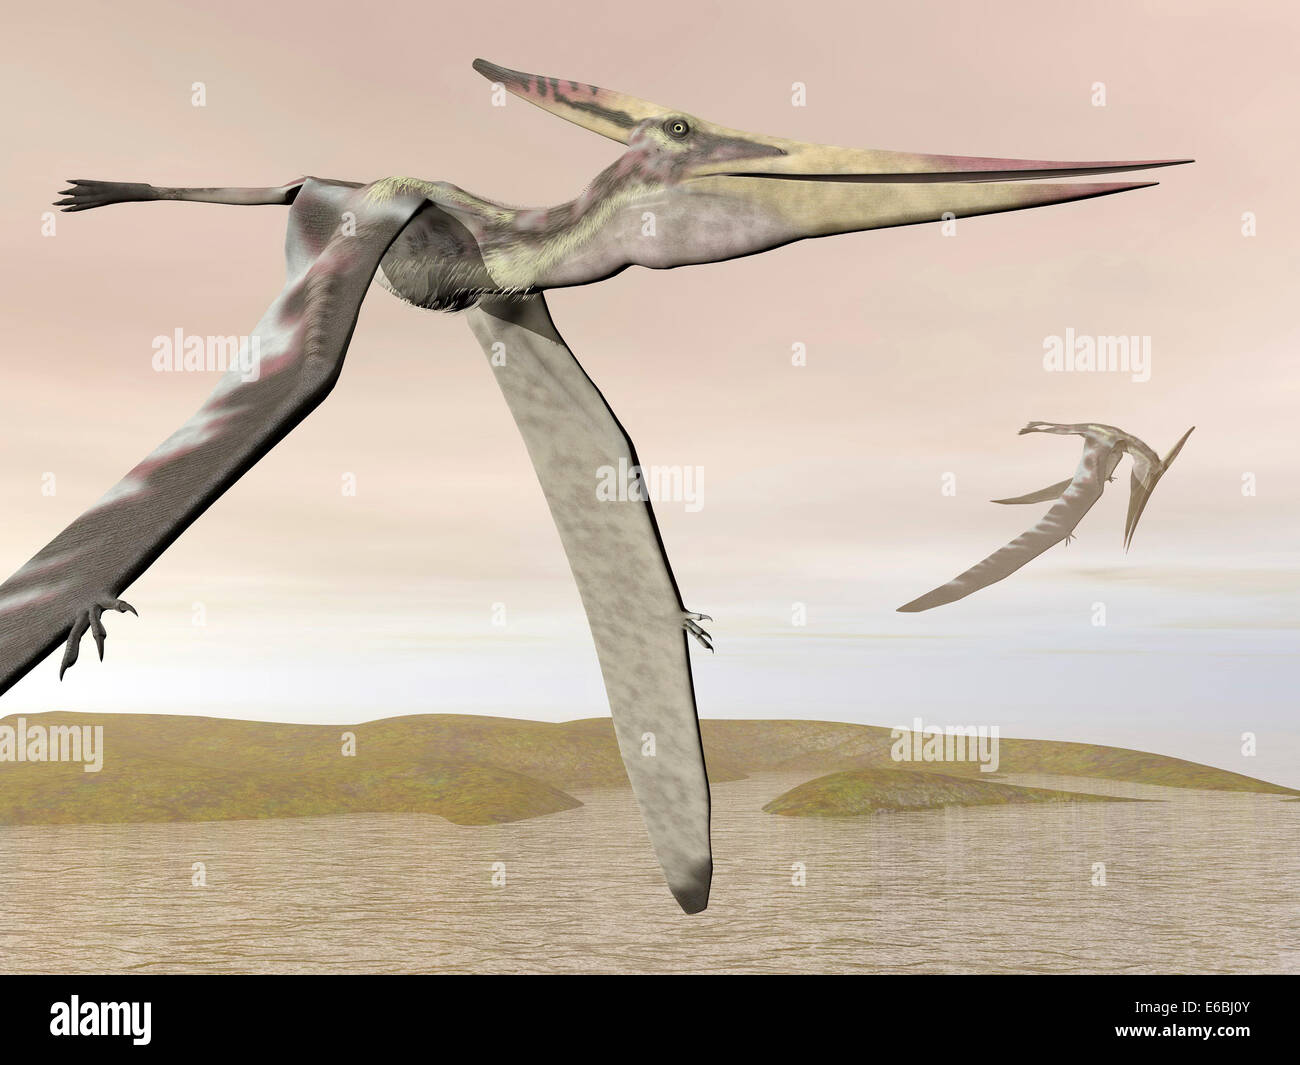 Two pteranodons flying over small islands. Stock Photo